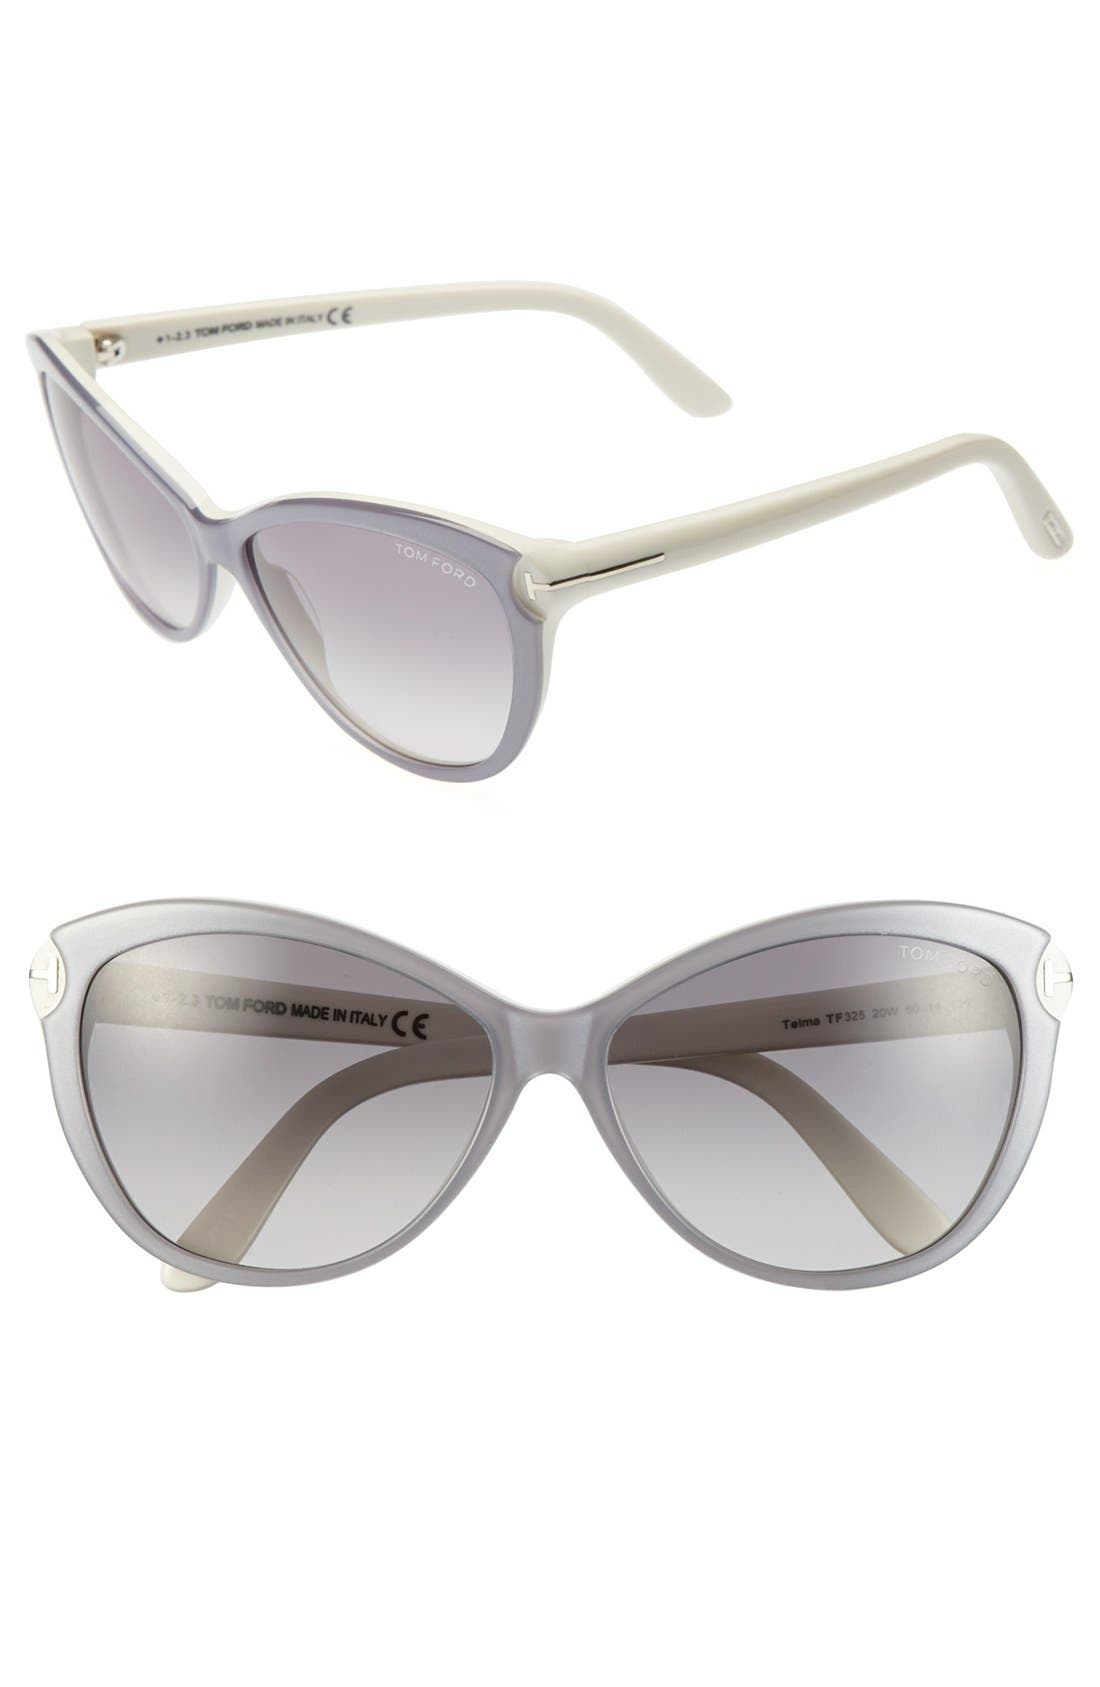 Alternate Image 1 Selected - Tom Ford 'Telma' 60mm Cat Eye Sunglasses